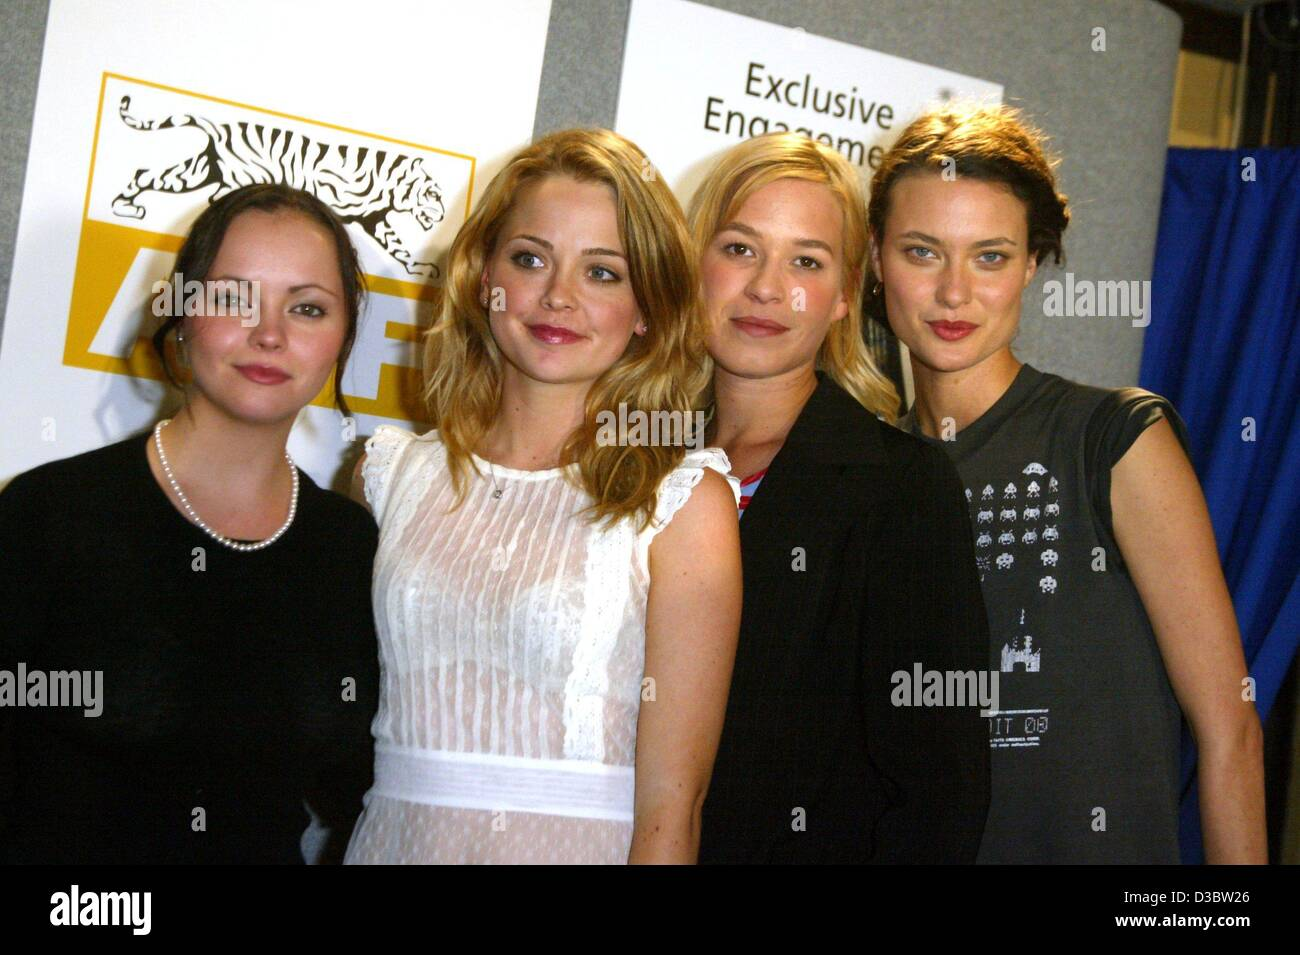 (dpa) - The actresses (from L:) Christina Ricci, Marisa Coughlan, Franka Potente and Shalom Harlow pose during a - Stock Image